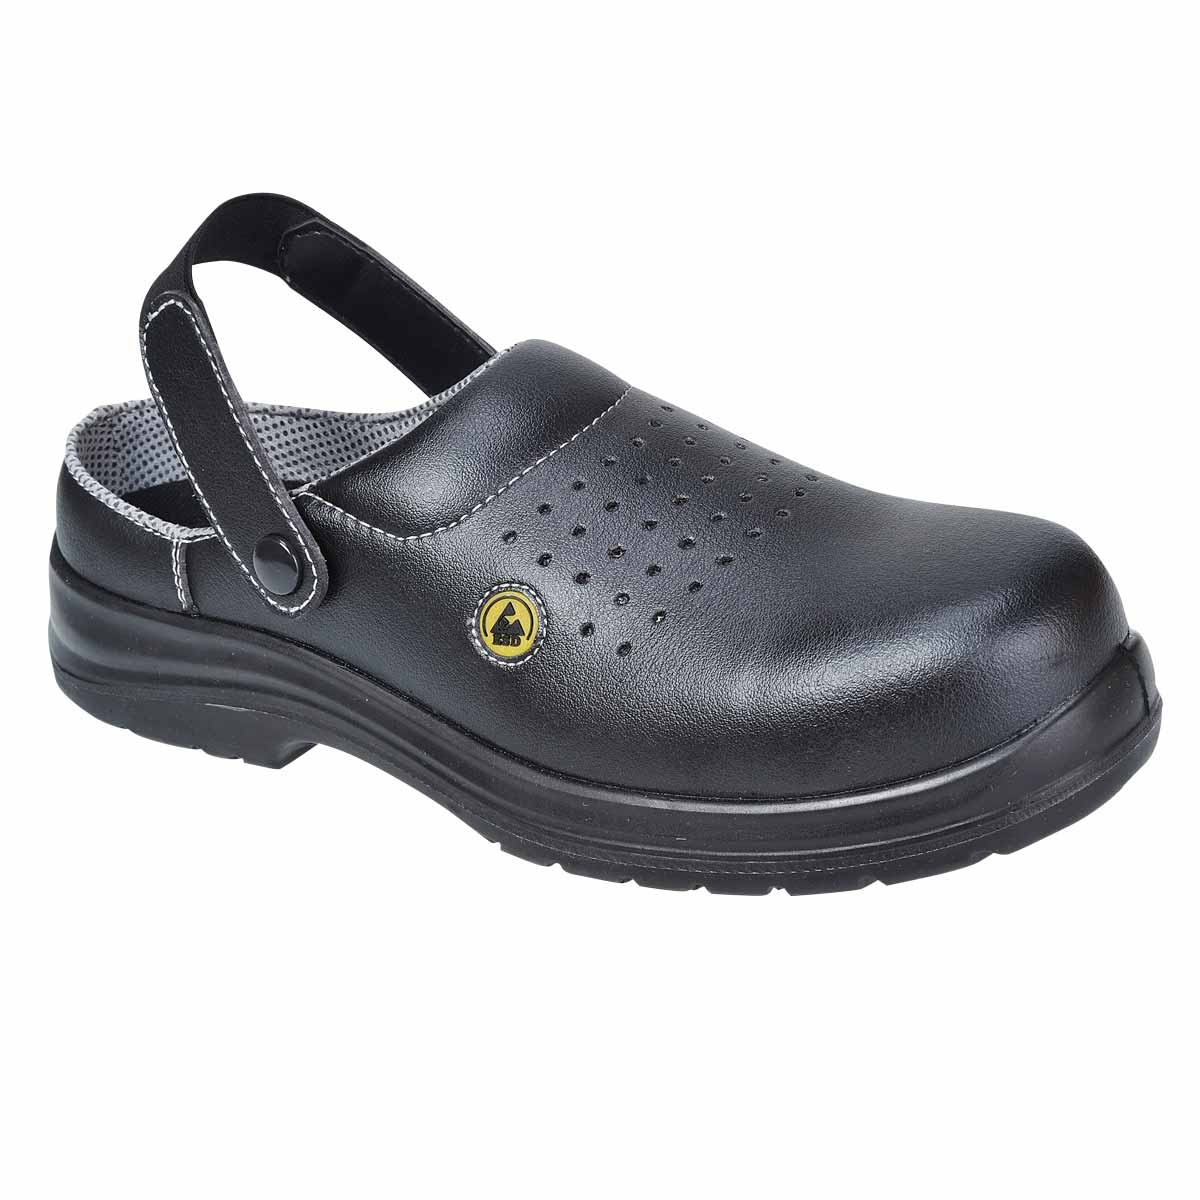 Compositelite Esd Perforated Safety Clog - FC03BKR